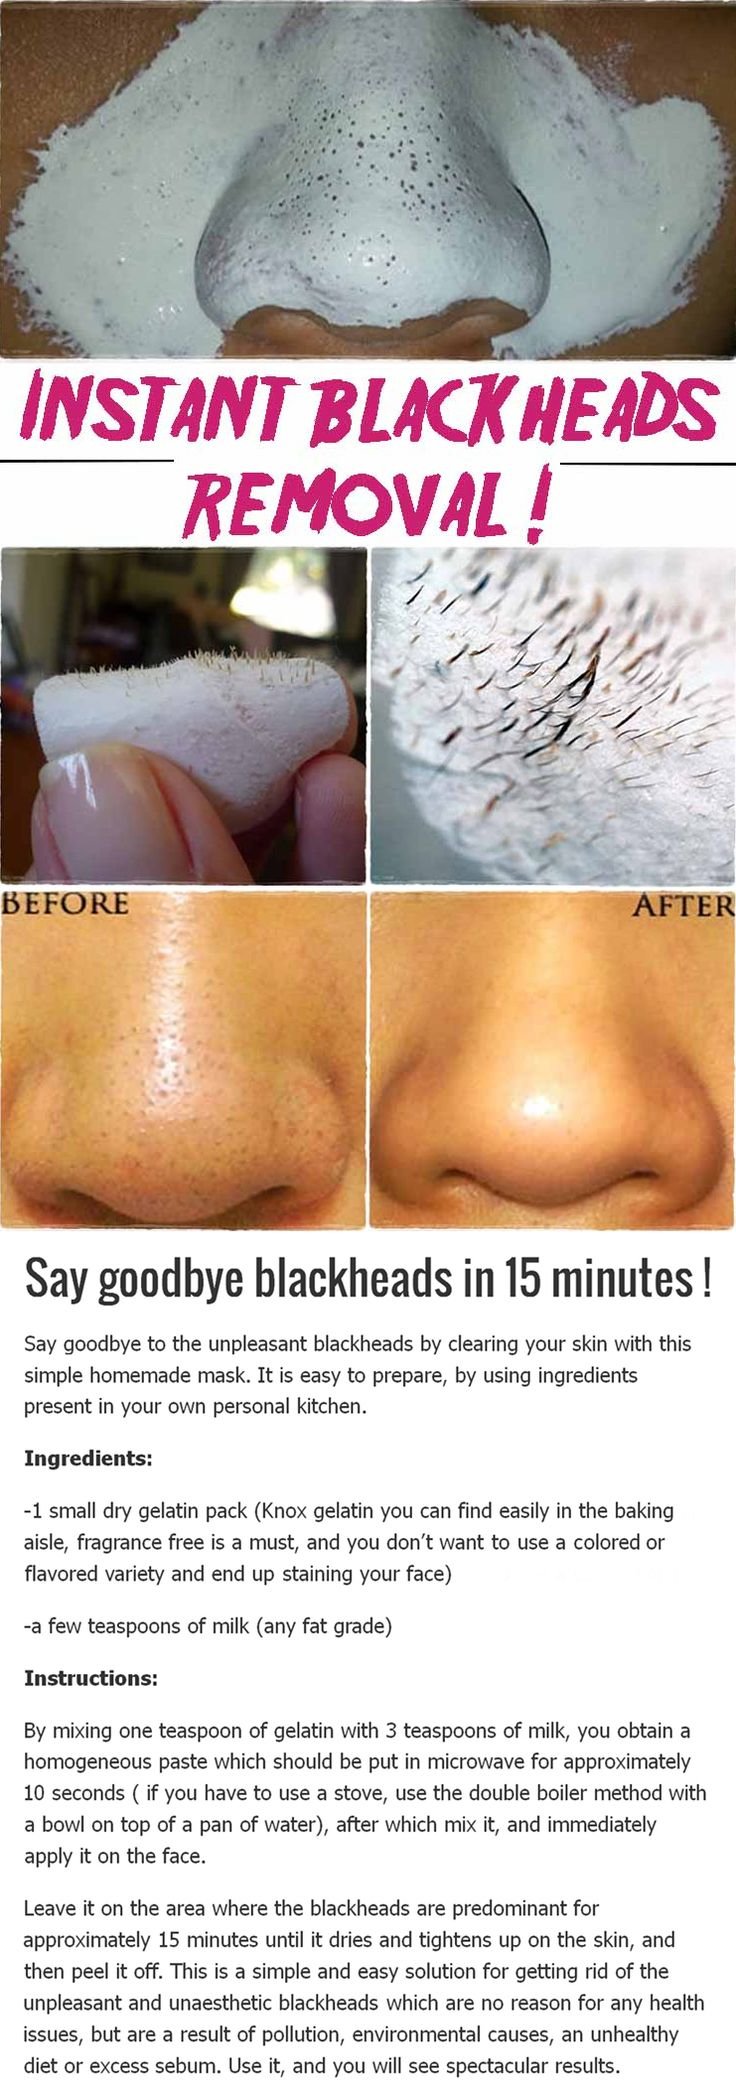 http://home made life project.com/say-goodbye-blackheads-in-15-minutes/